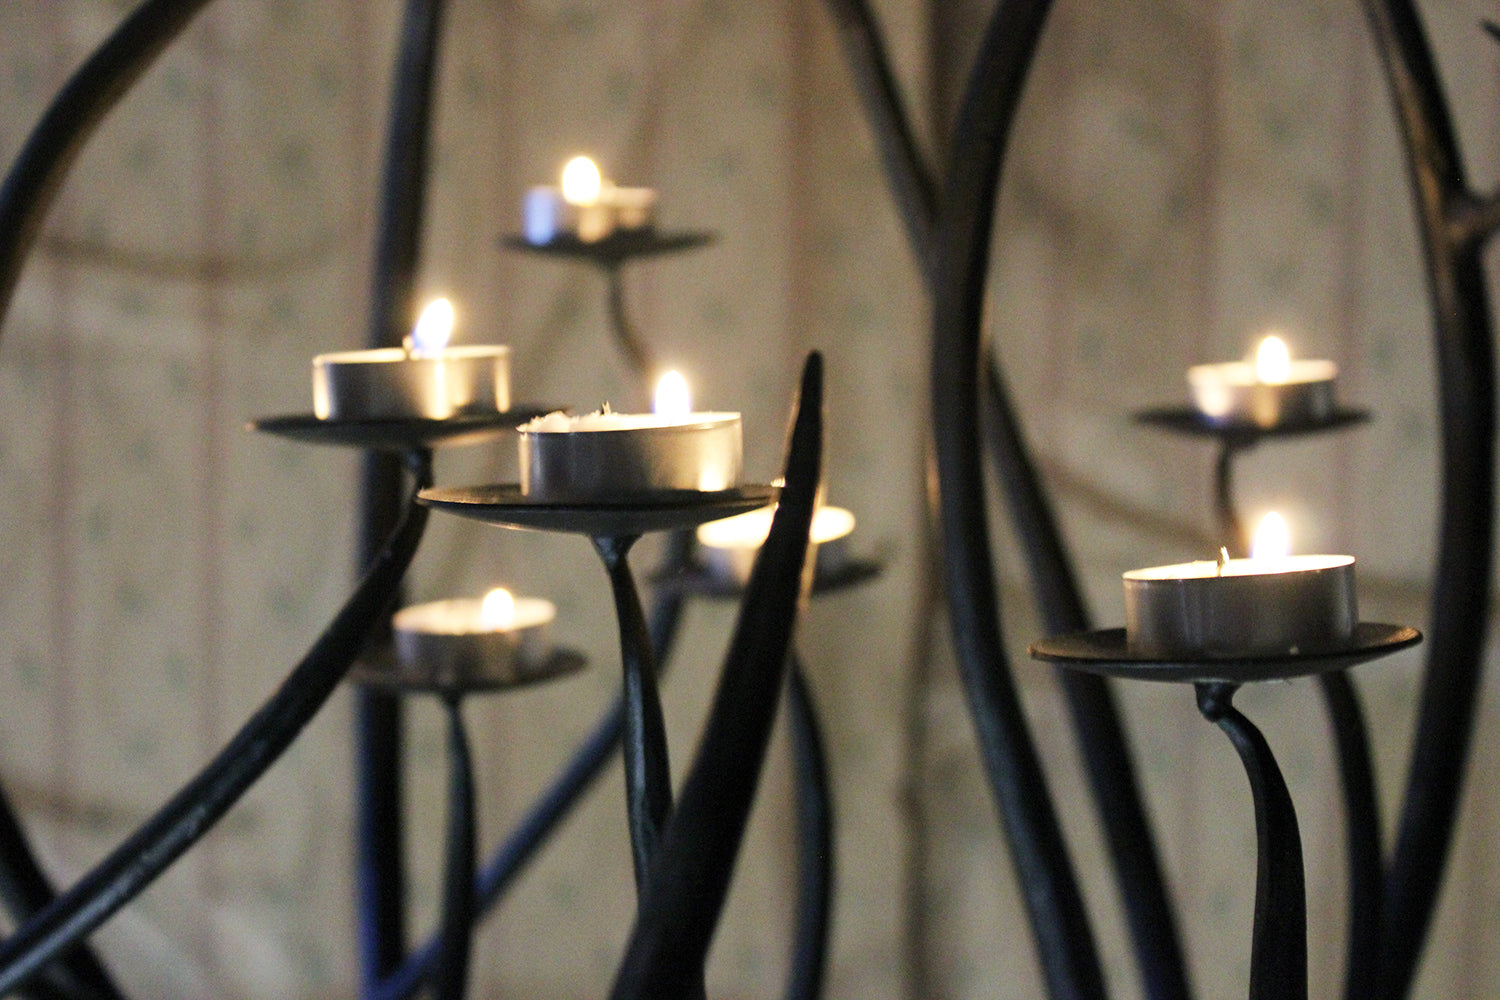 A Large 20thC Black Wrought Iron Floor-Standing Ten-Sconce Sphere Candelabra